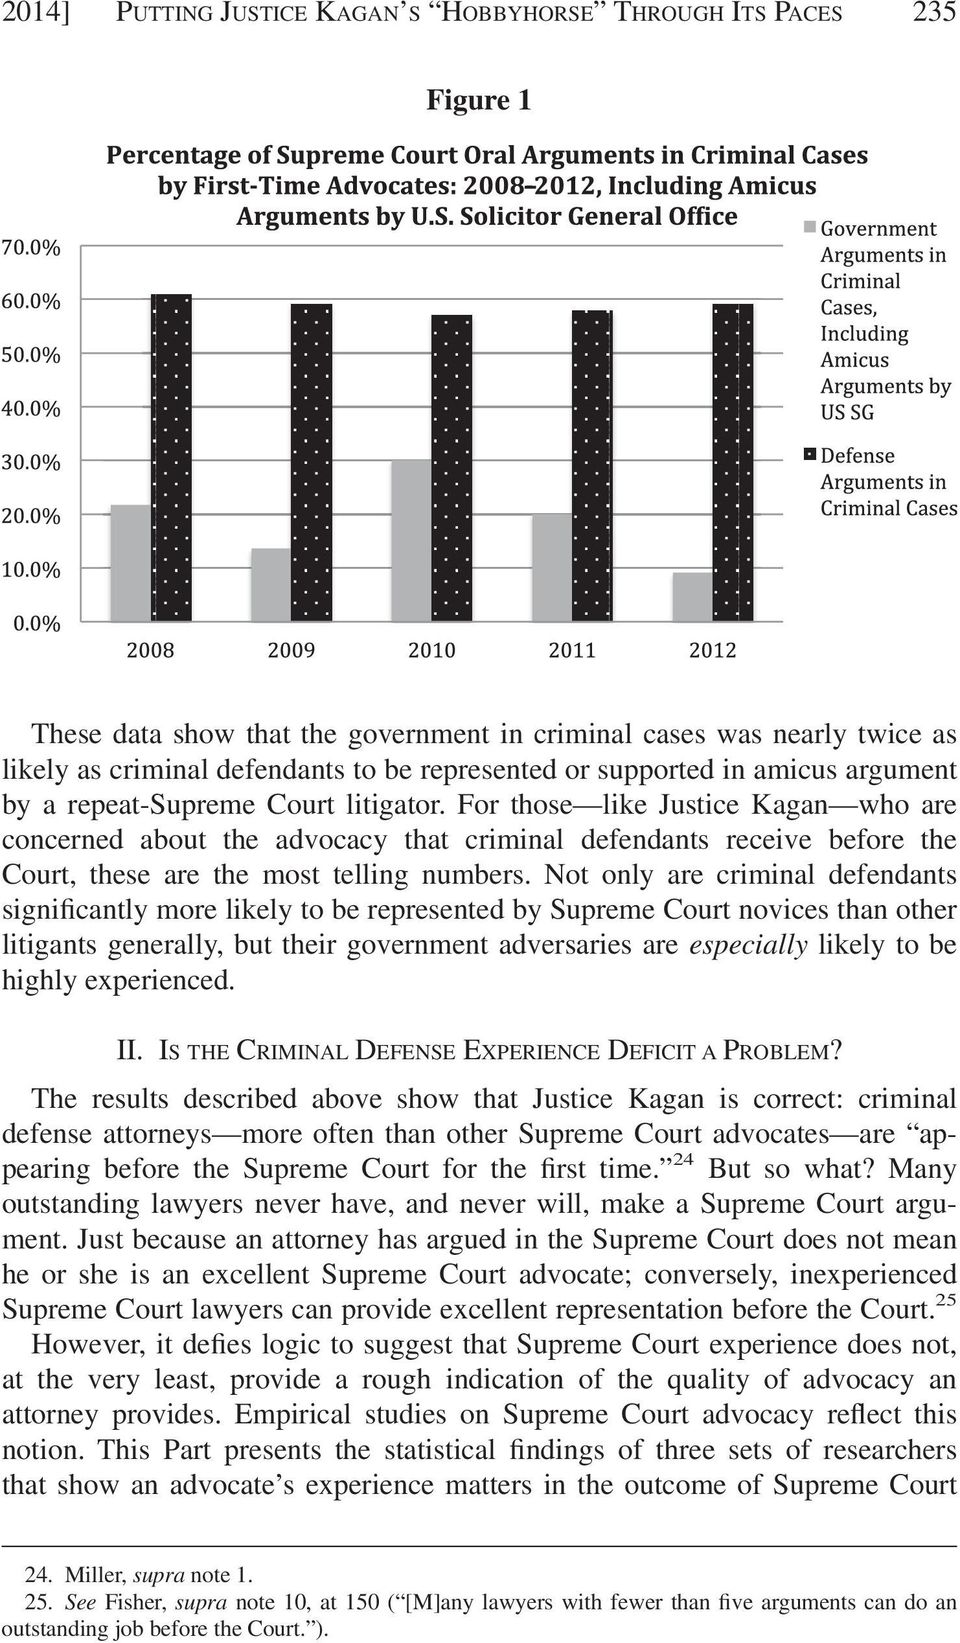 For those like Justice Kagan who are concerned about the advocacy that criminal defendants receive before the Court, these are the most telling numbers.